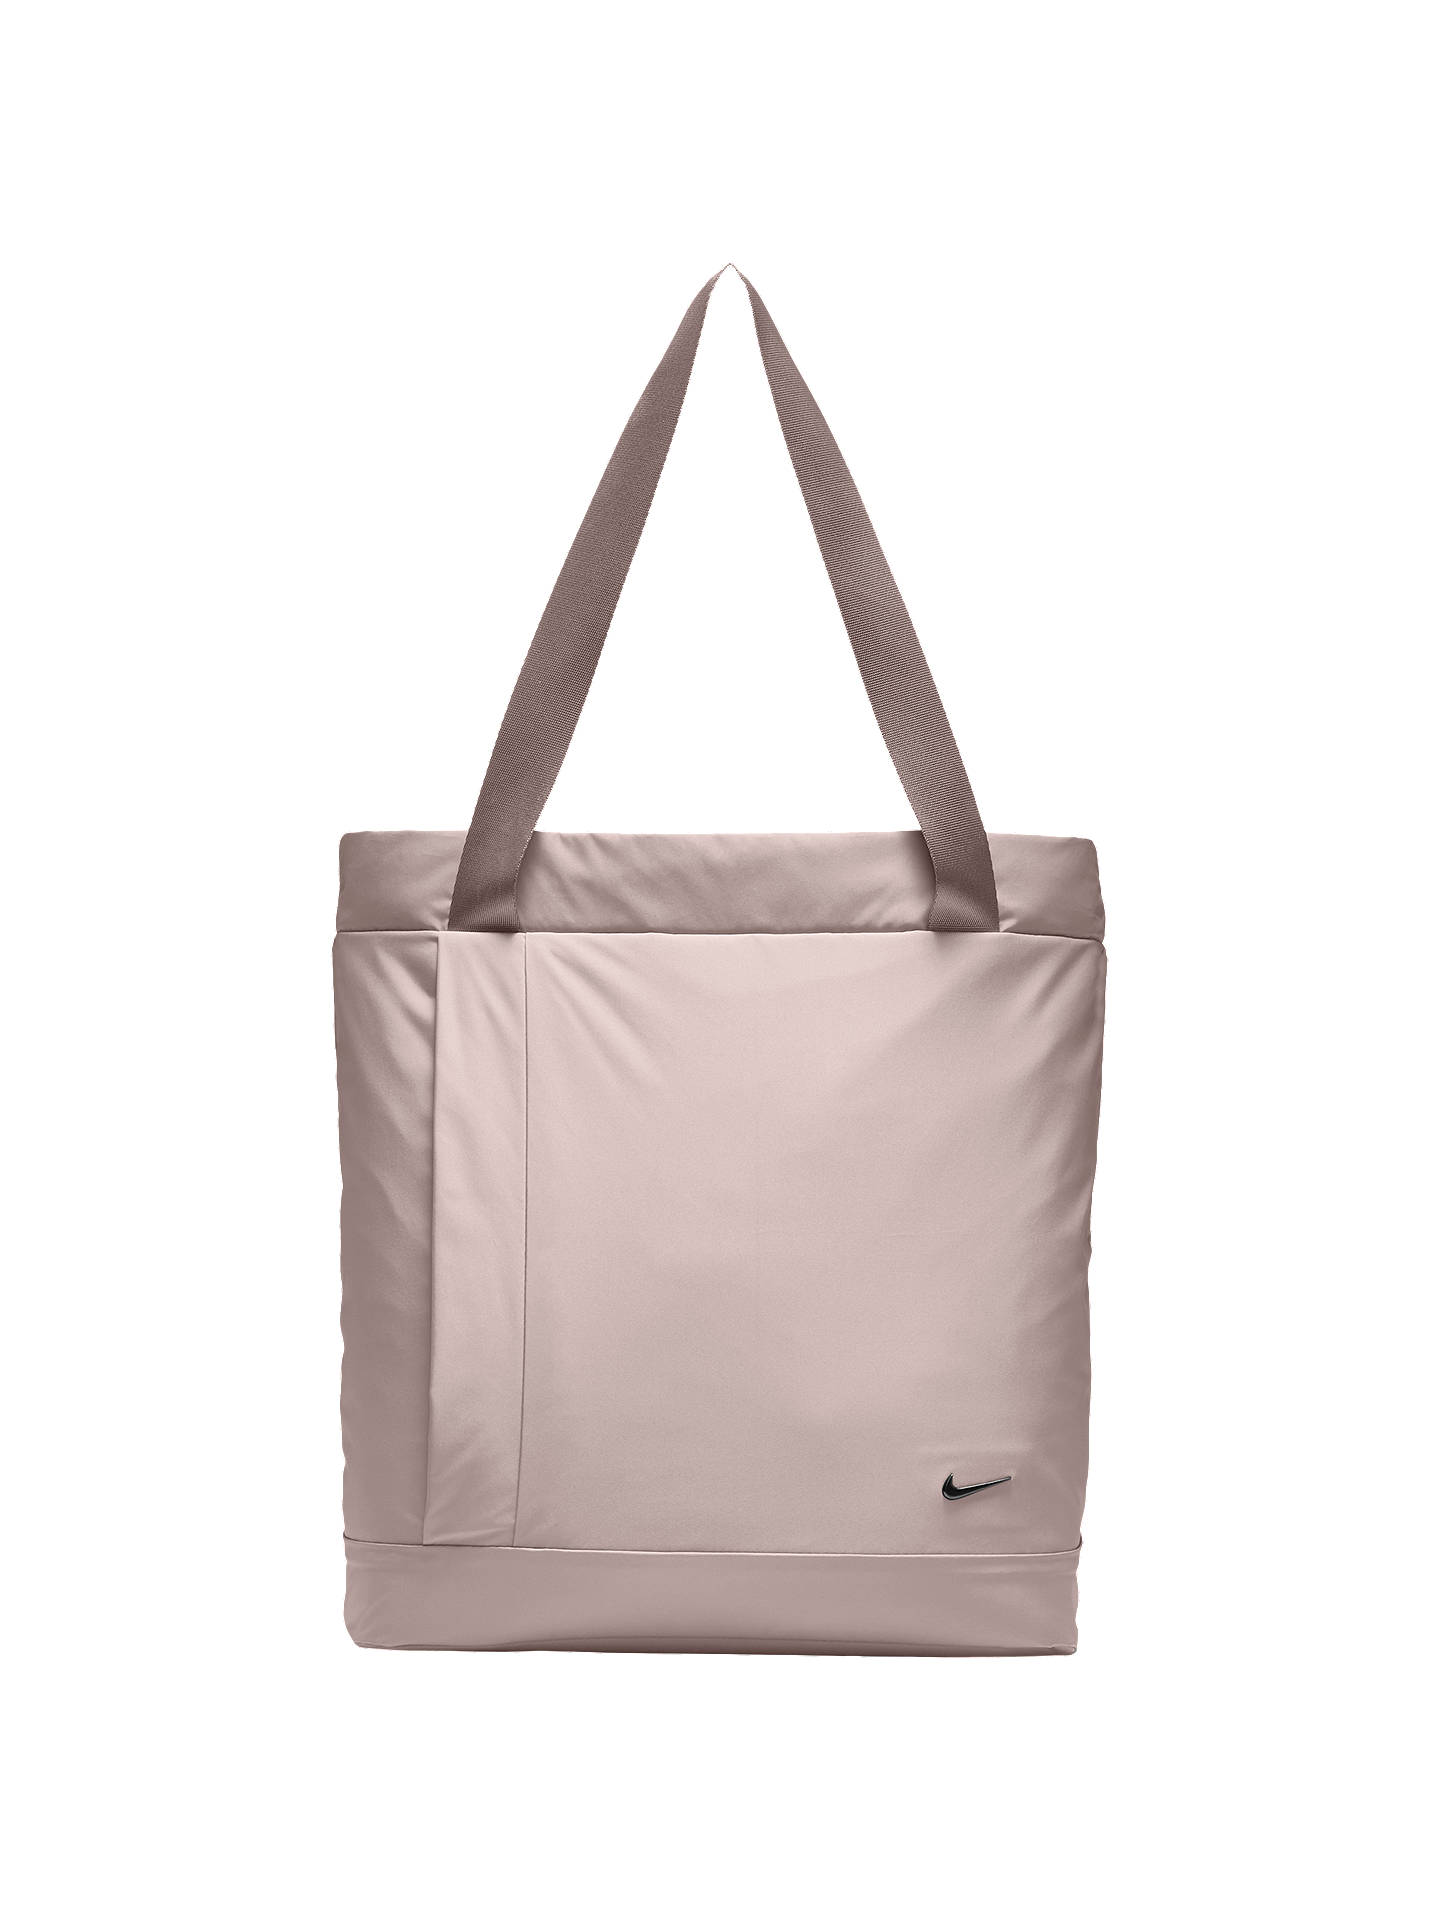 590c8ce2a Buy Nike Legend Training Tote Bag